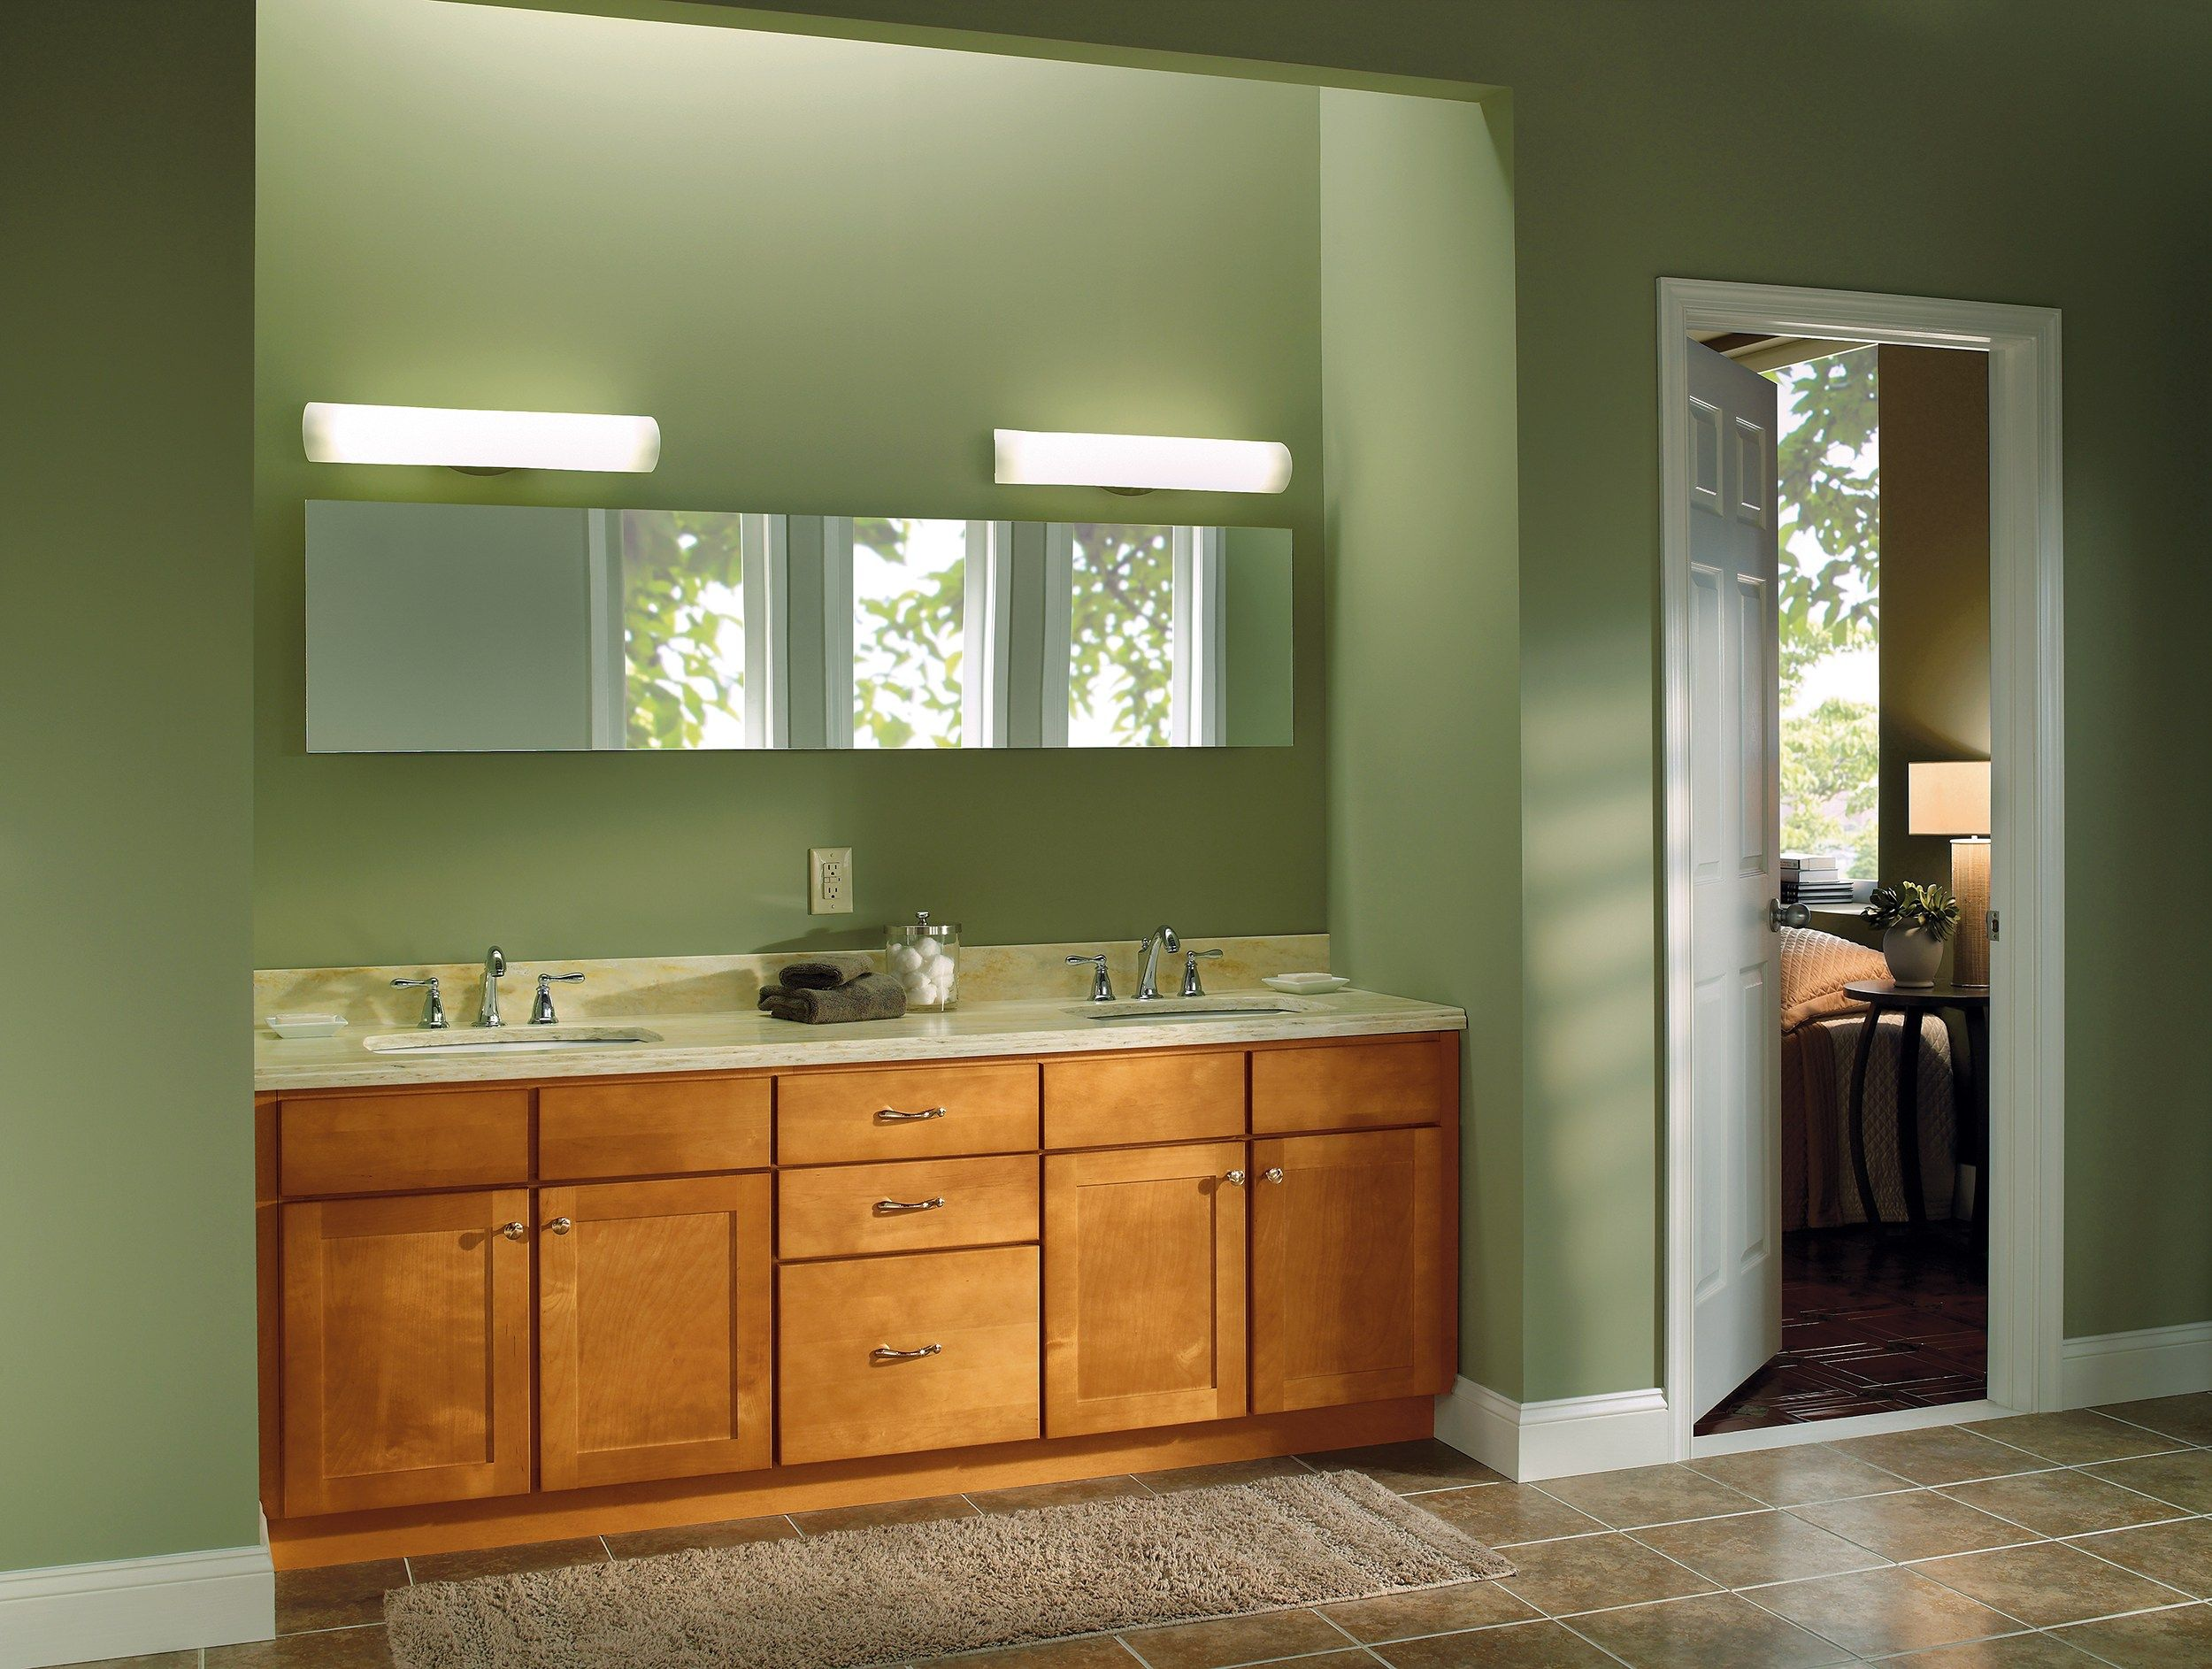 Cabinets Affordable Kitchen Bath Derry Nh Malden Ma Asked Products Malden  Ma Derry Nh Halco Showroom